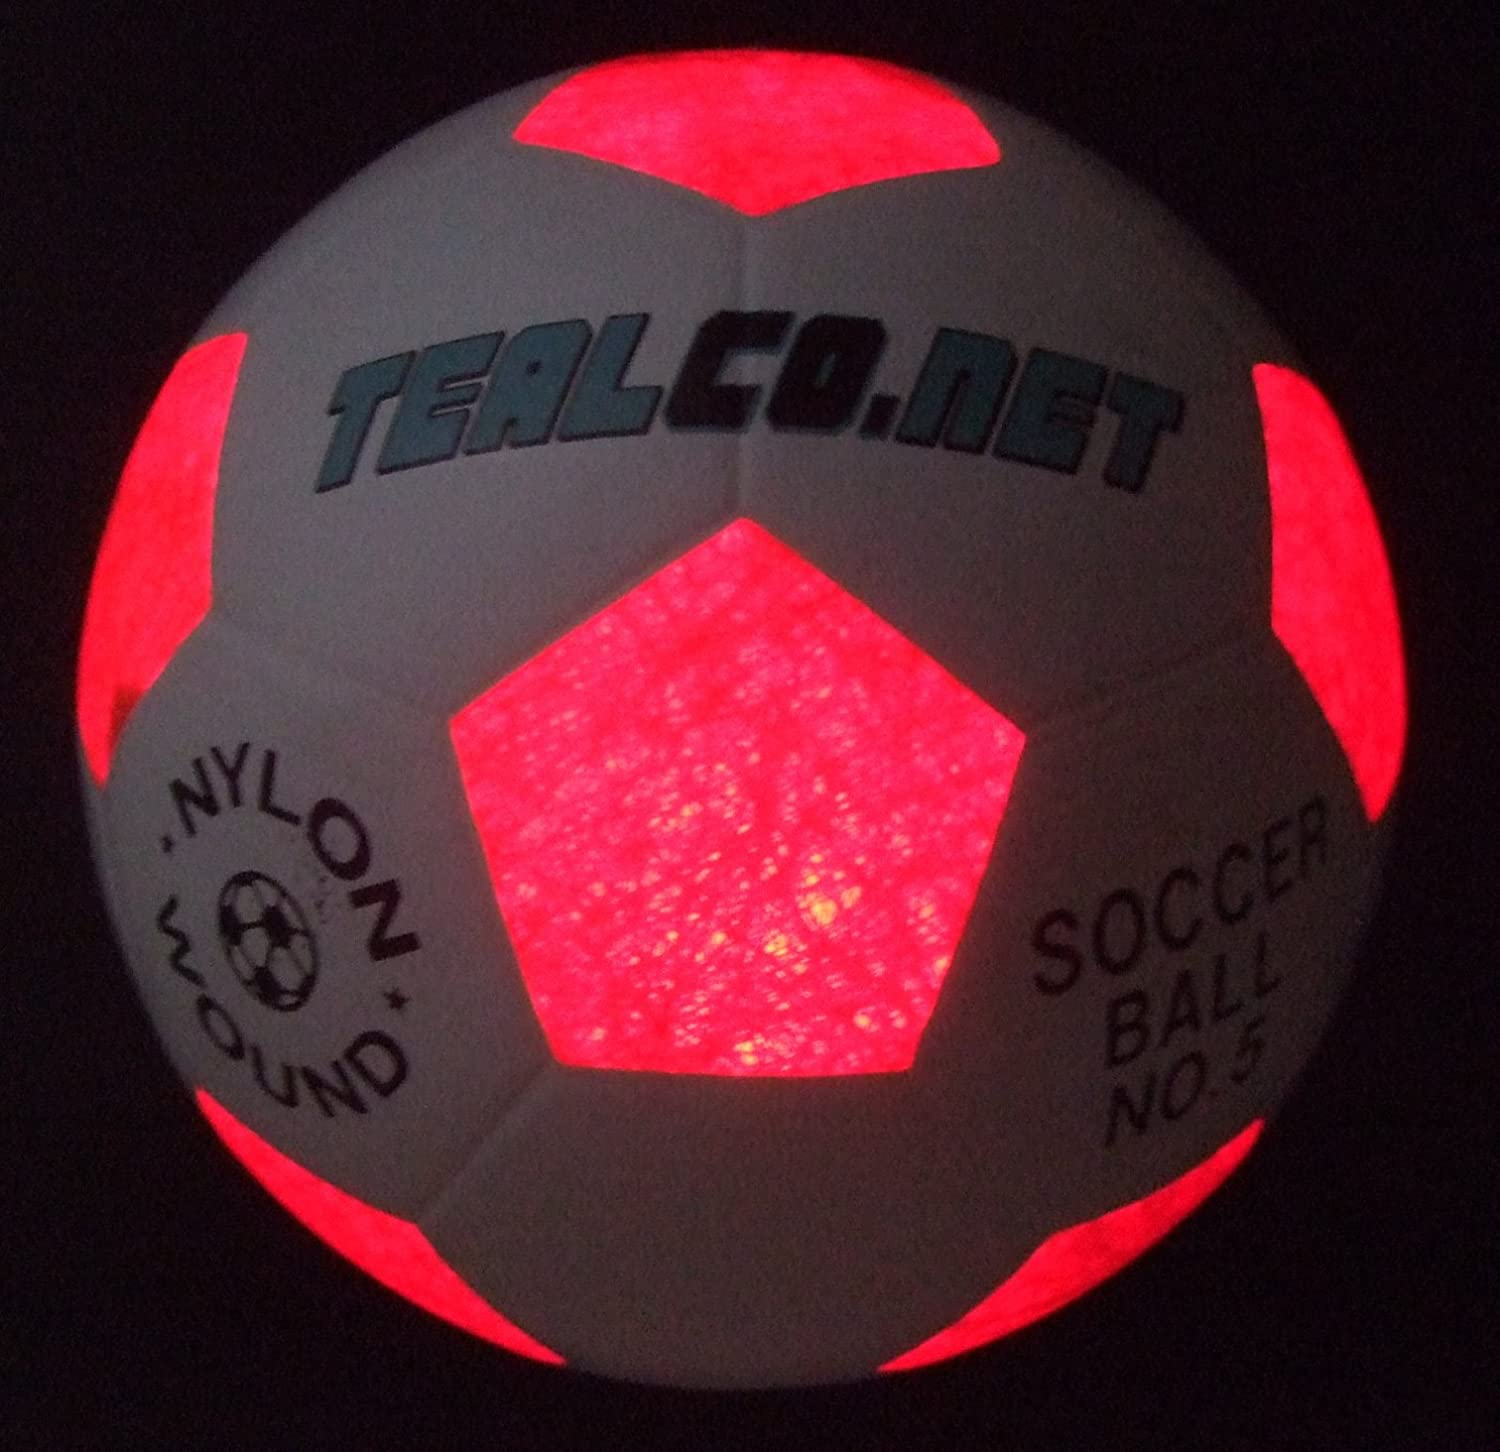 sensory light ot mirror cup balls catch who these orientaltrading up watch on ball this lighting suction orbs pin the wall glowing em toss and com will